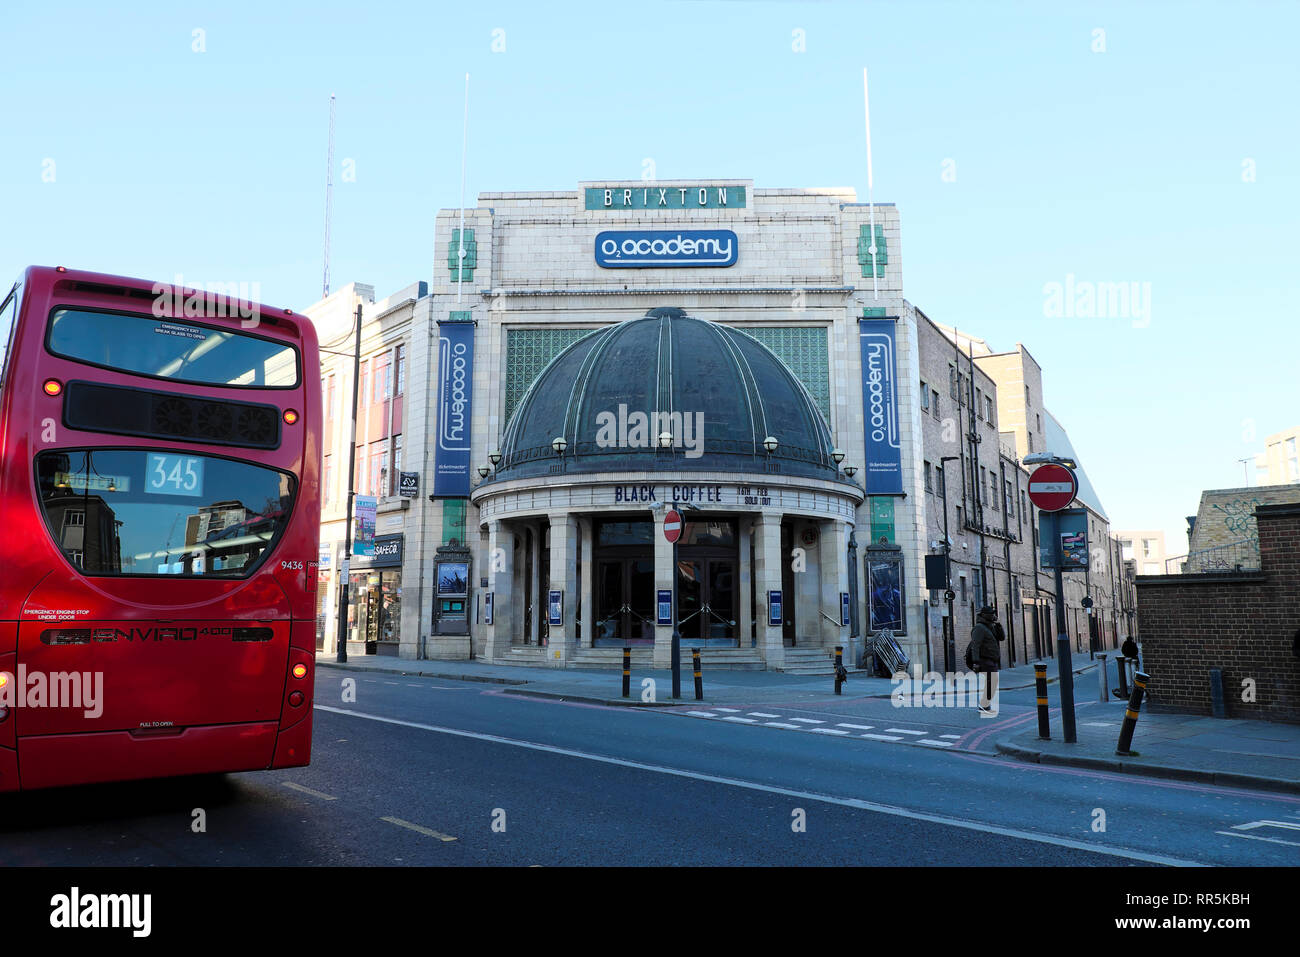 Exterior of O2 Academy building in Brixton, South London UK  KATHY DEWITT Stock Photo